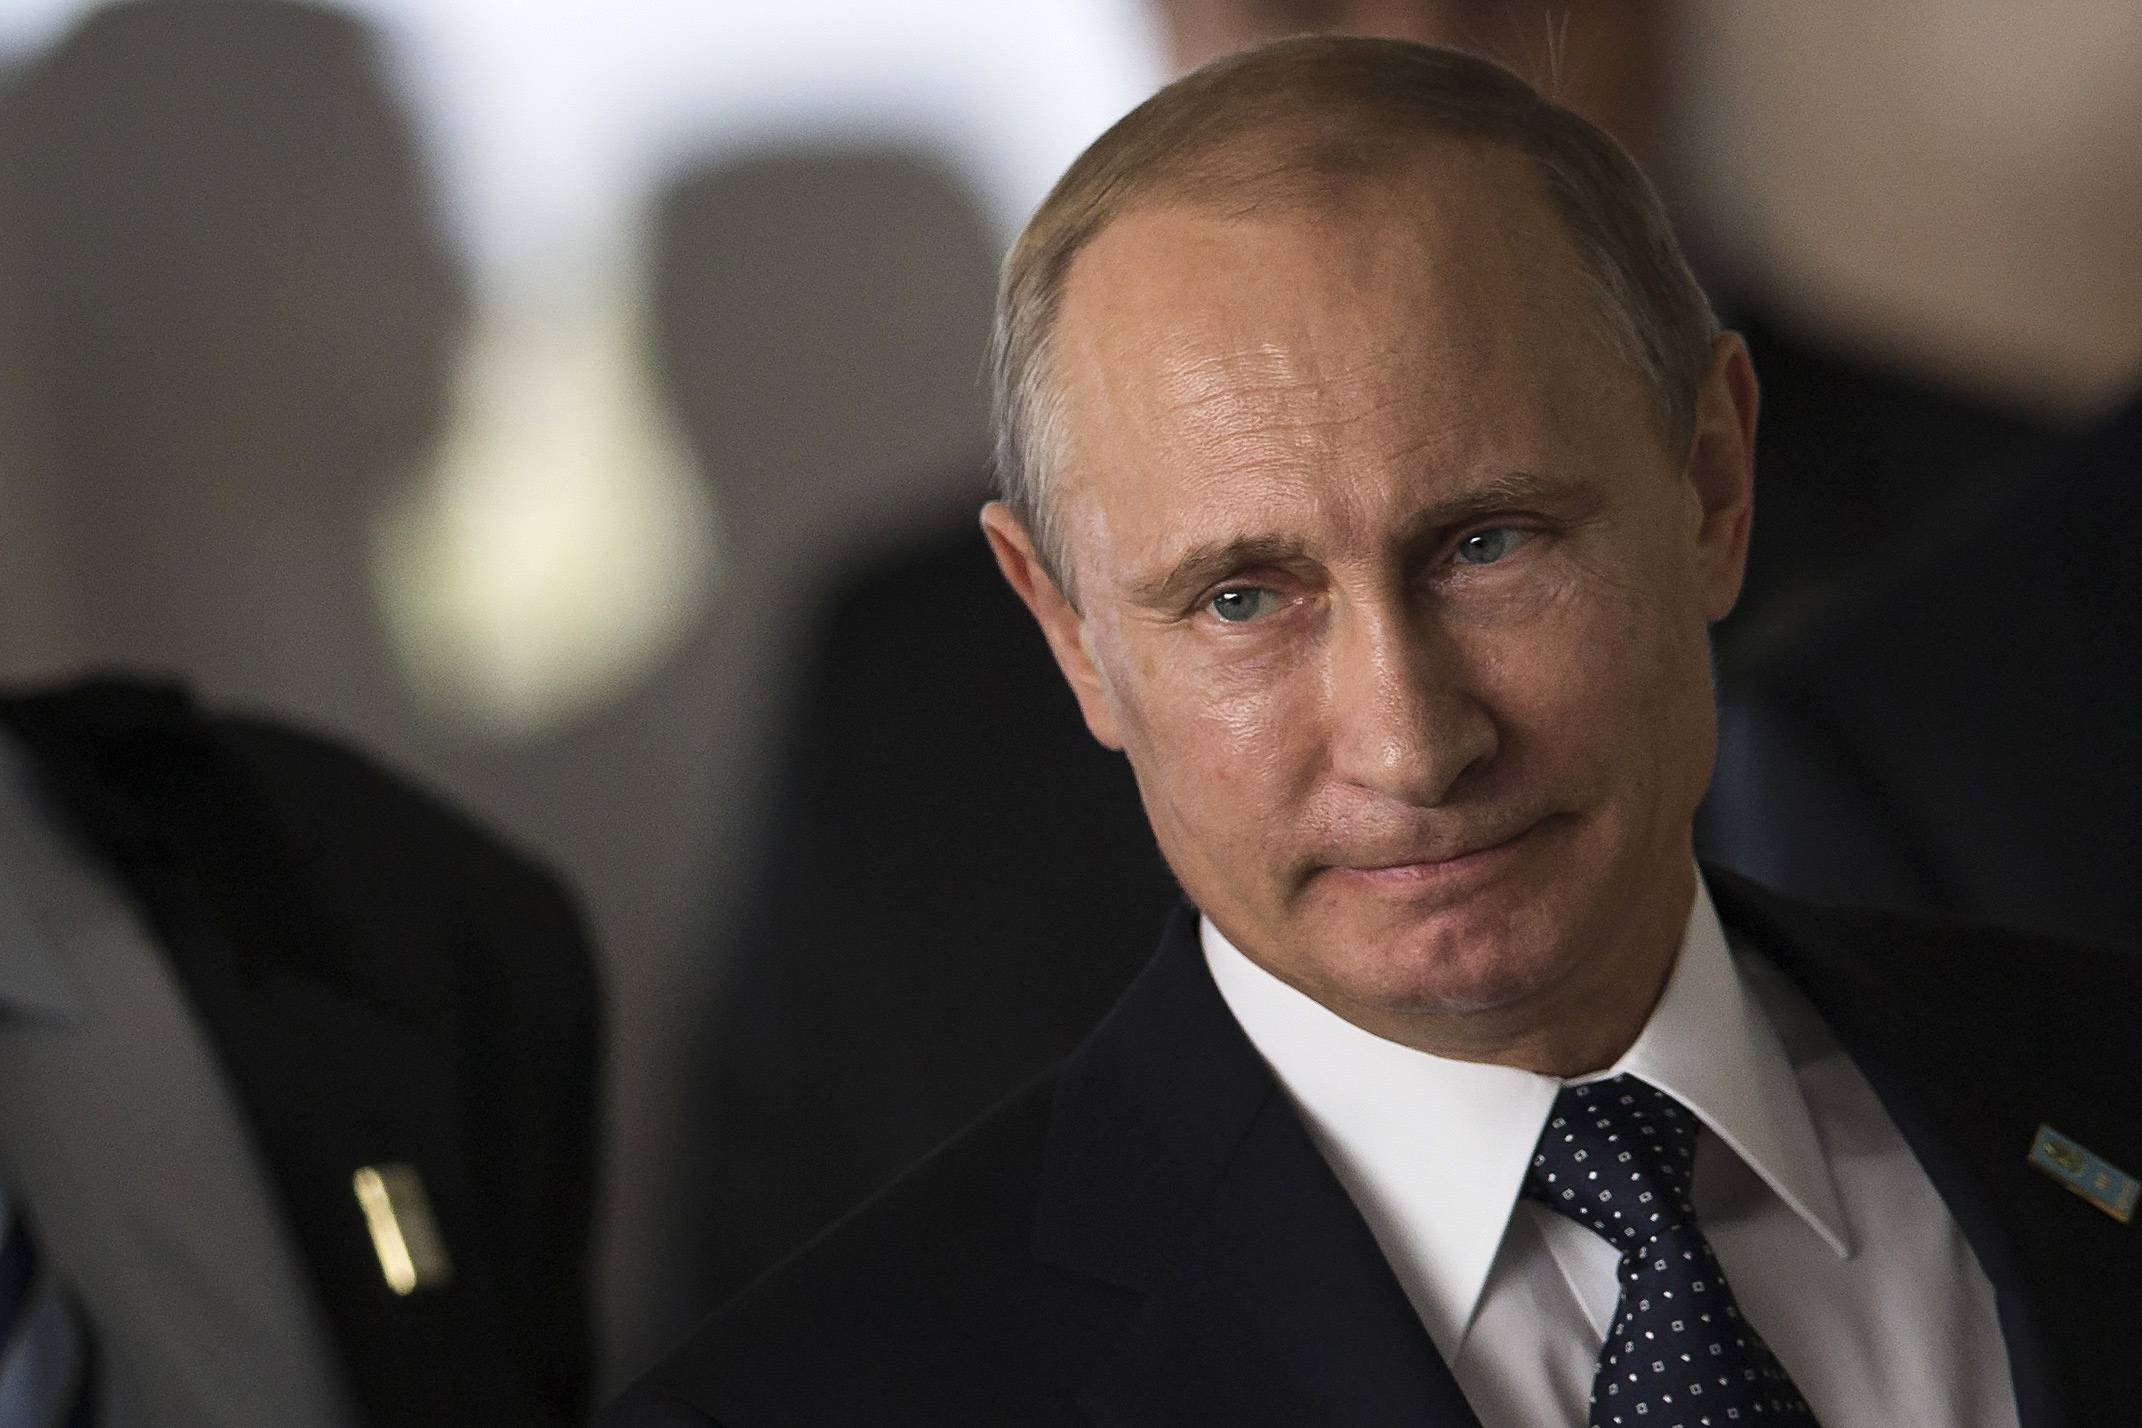 The United States and European Union on Tuesday curbed Russia's access to bank financing and advanced technology in its widest-ranging sanctions yet over President Vladimir Putin's backing of the rebels in eastern Ukraine. Putin is seen here.